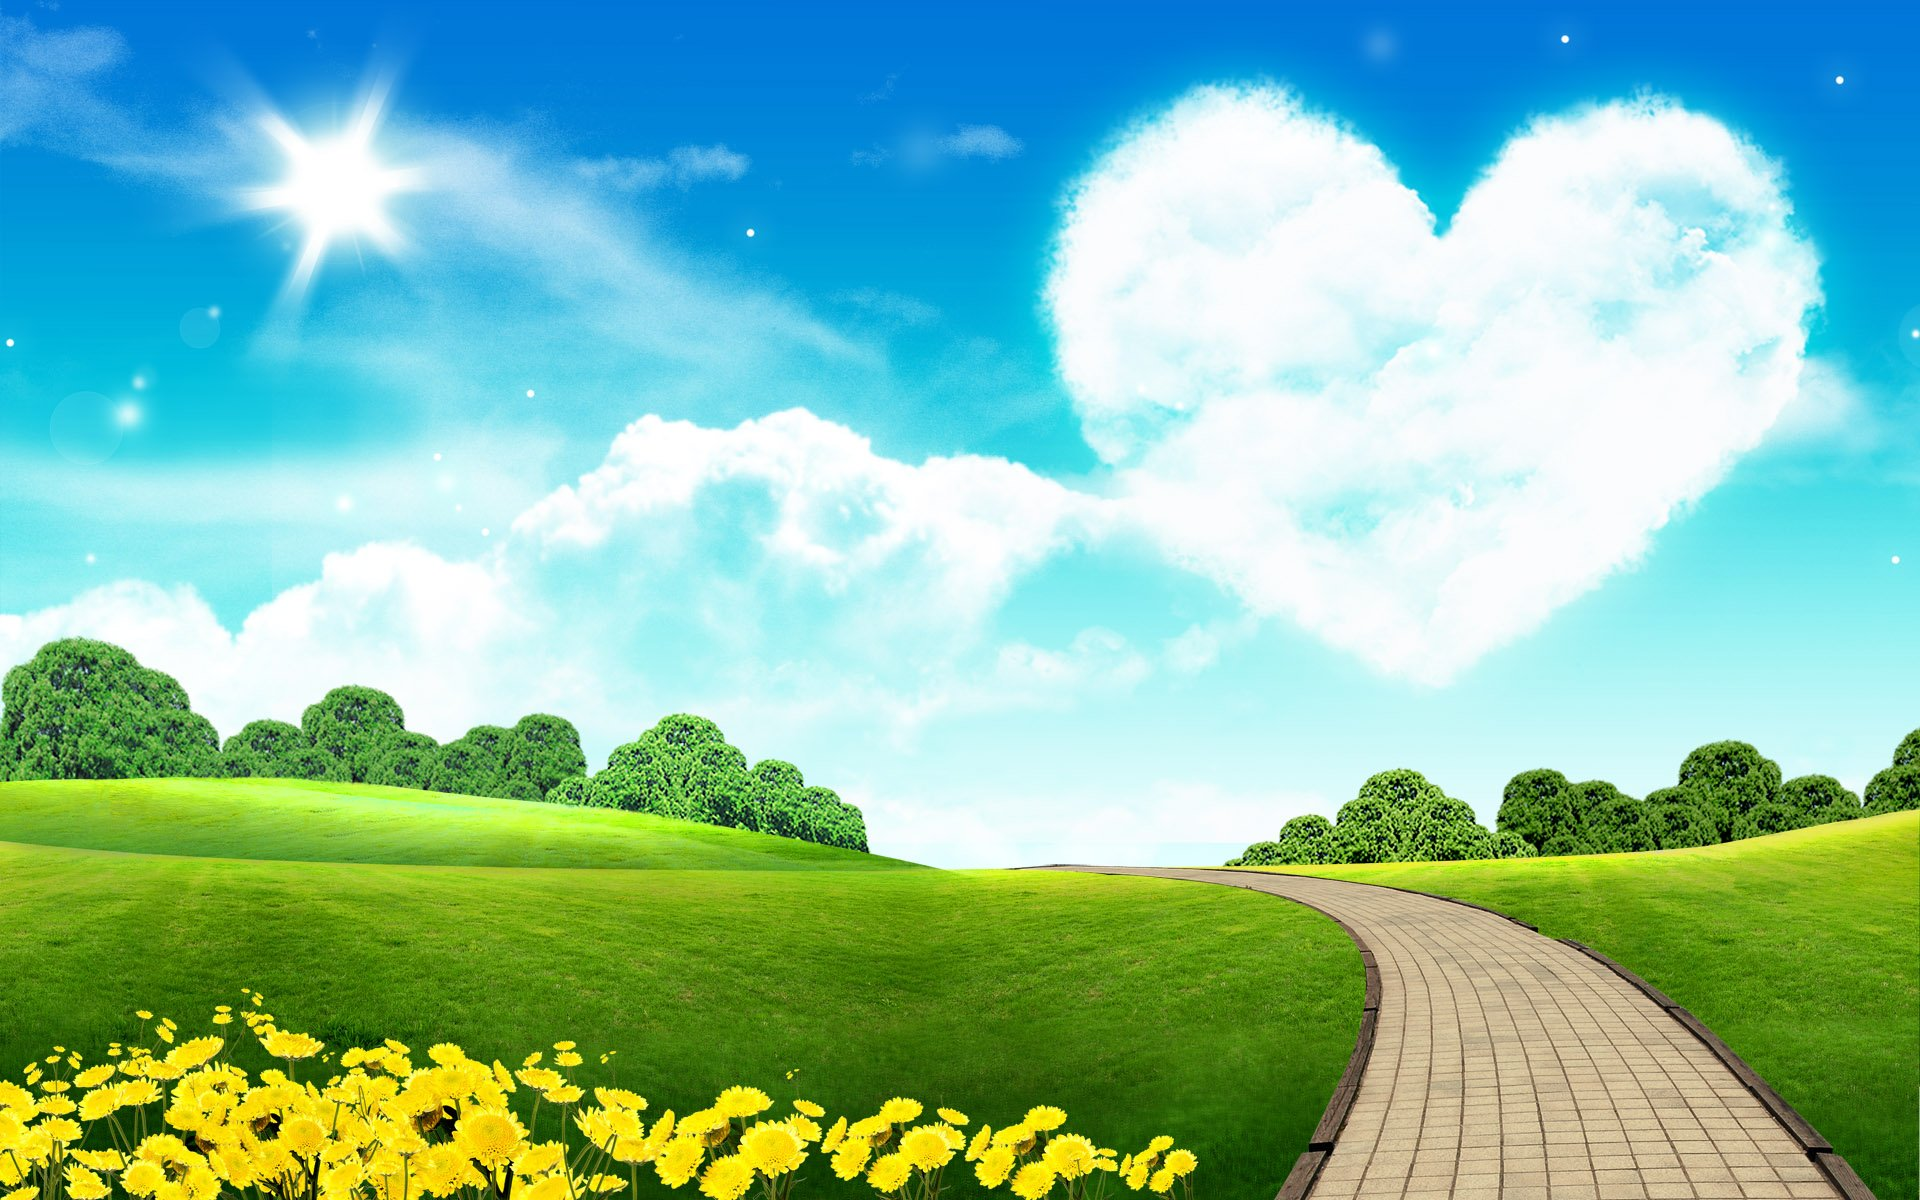 cloudy heart scenery bricks wallpapers cloudy heart scenery bricks